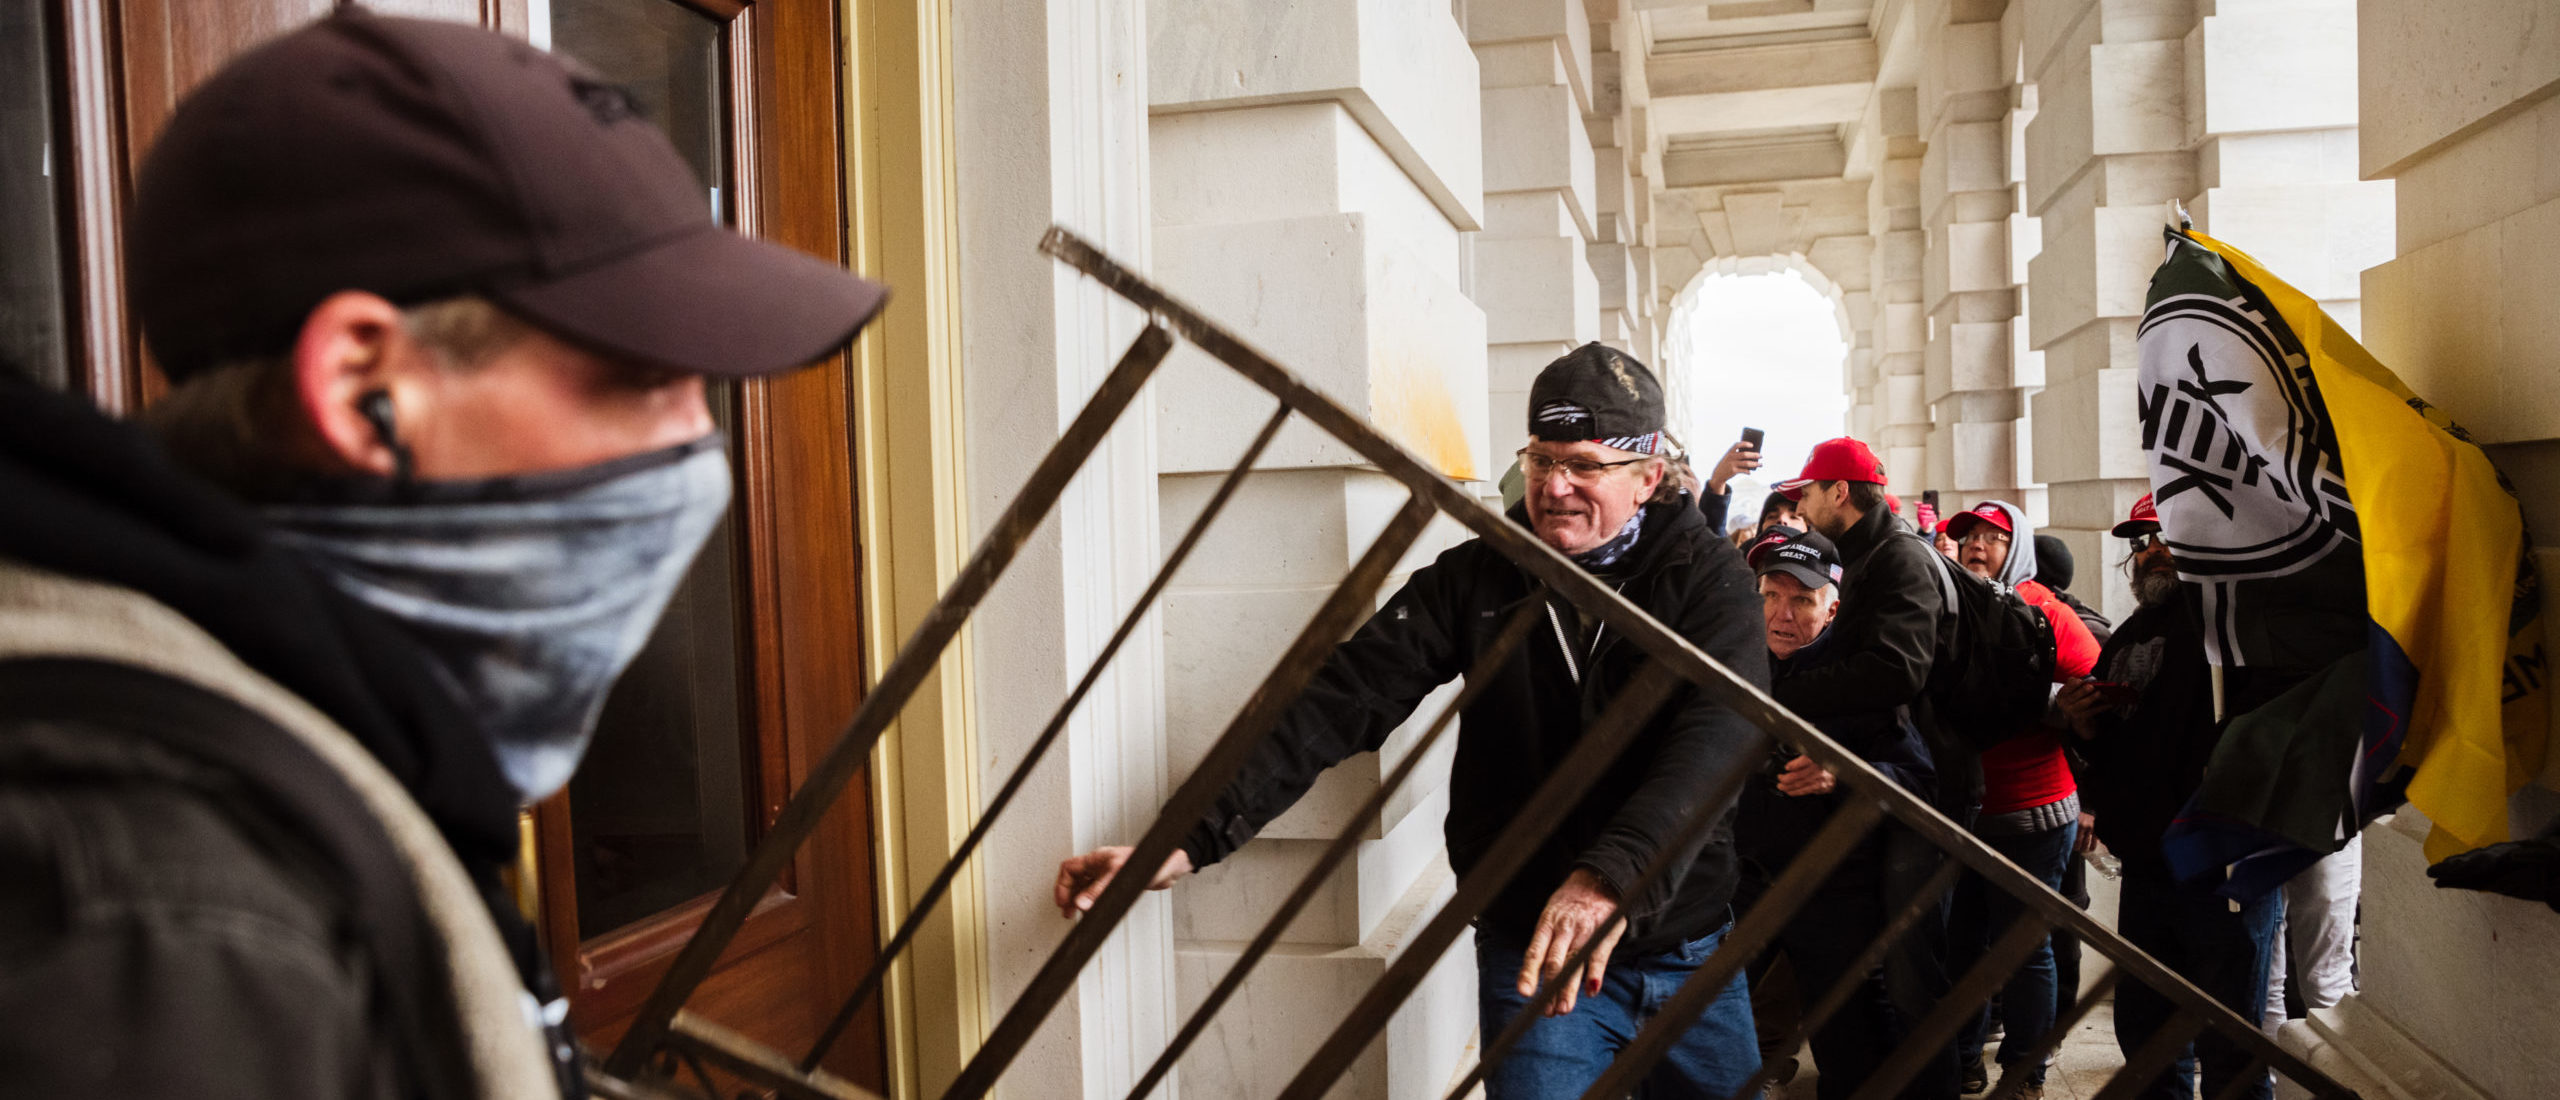 A member of a pro-Trump mob bashes an entrance of the Capitol Building in an attempt to gain access on January 6, 2021 in Washington, DC.